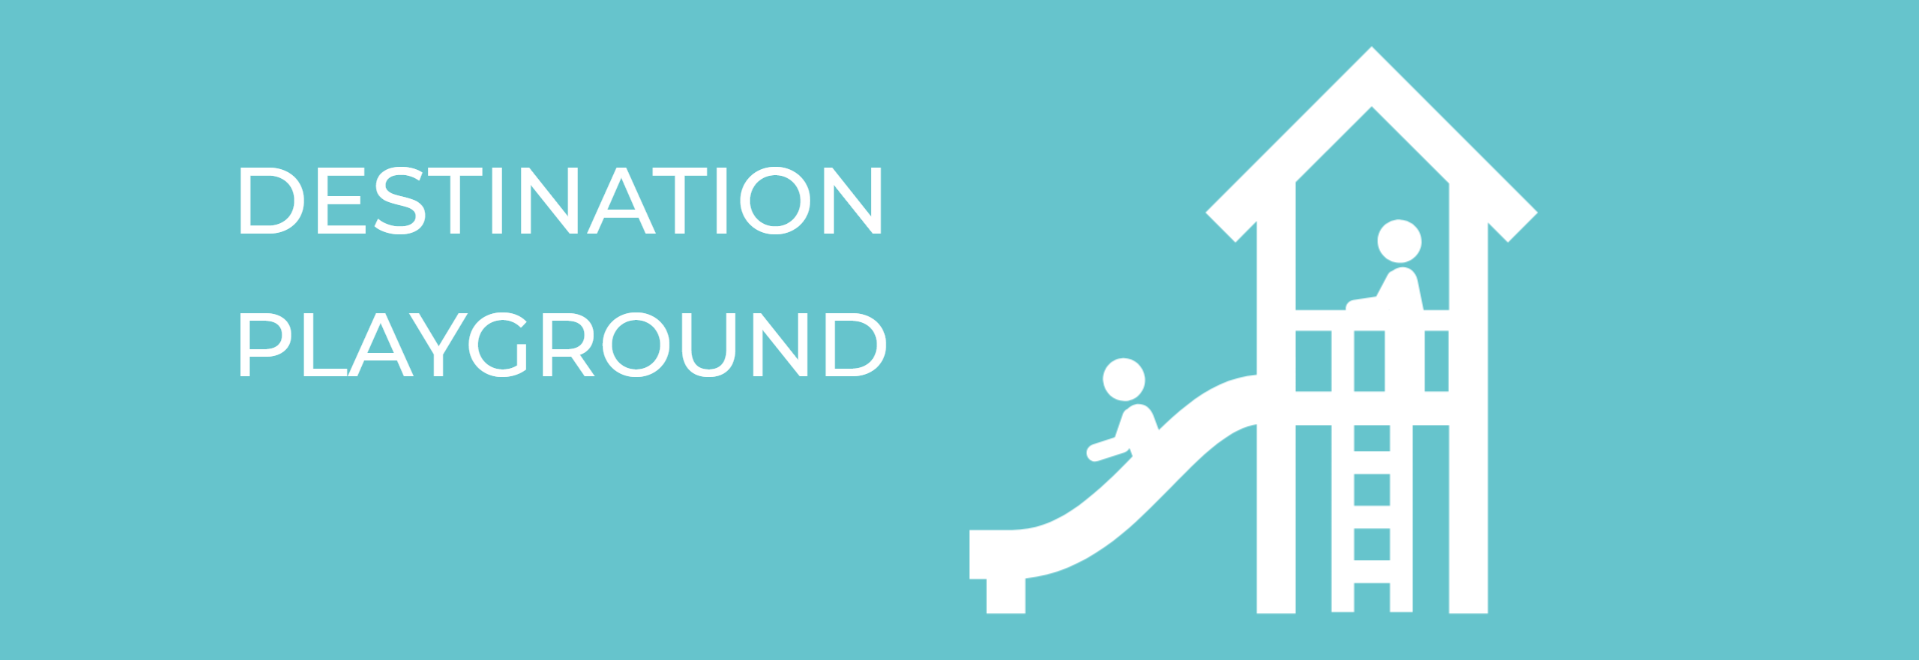 Destination playground banner image